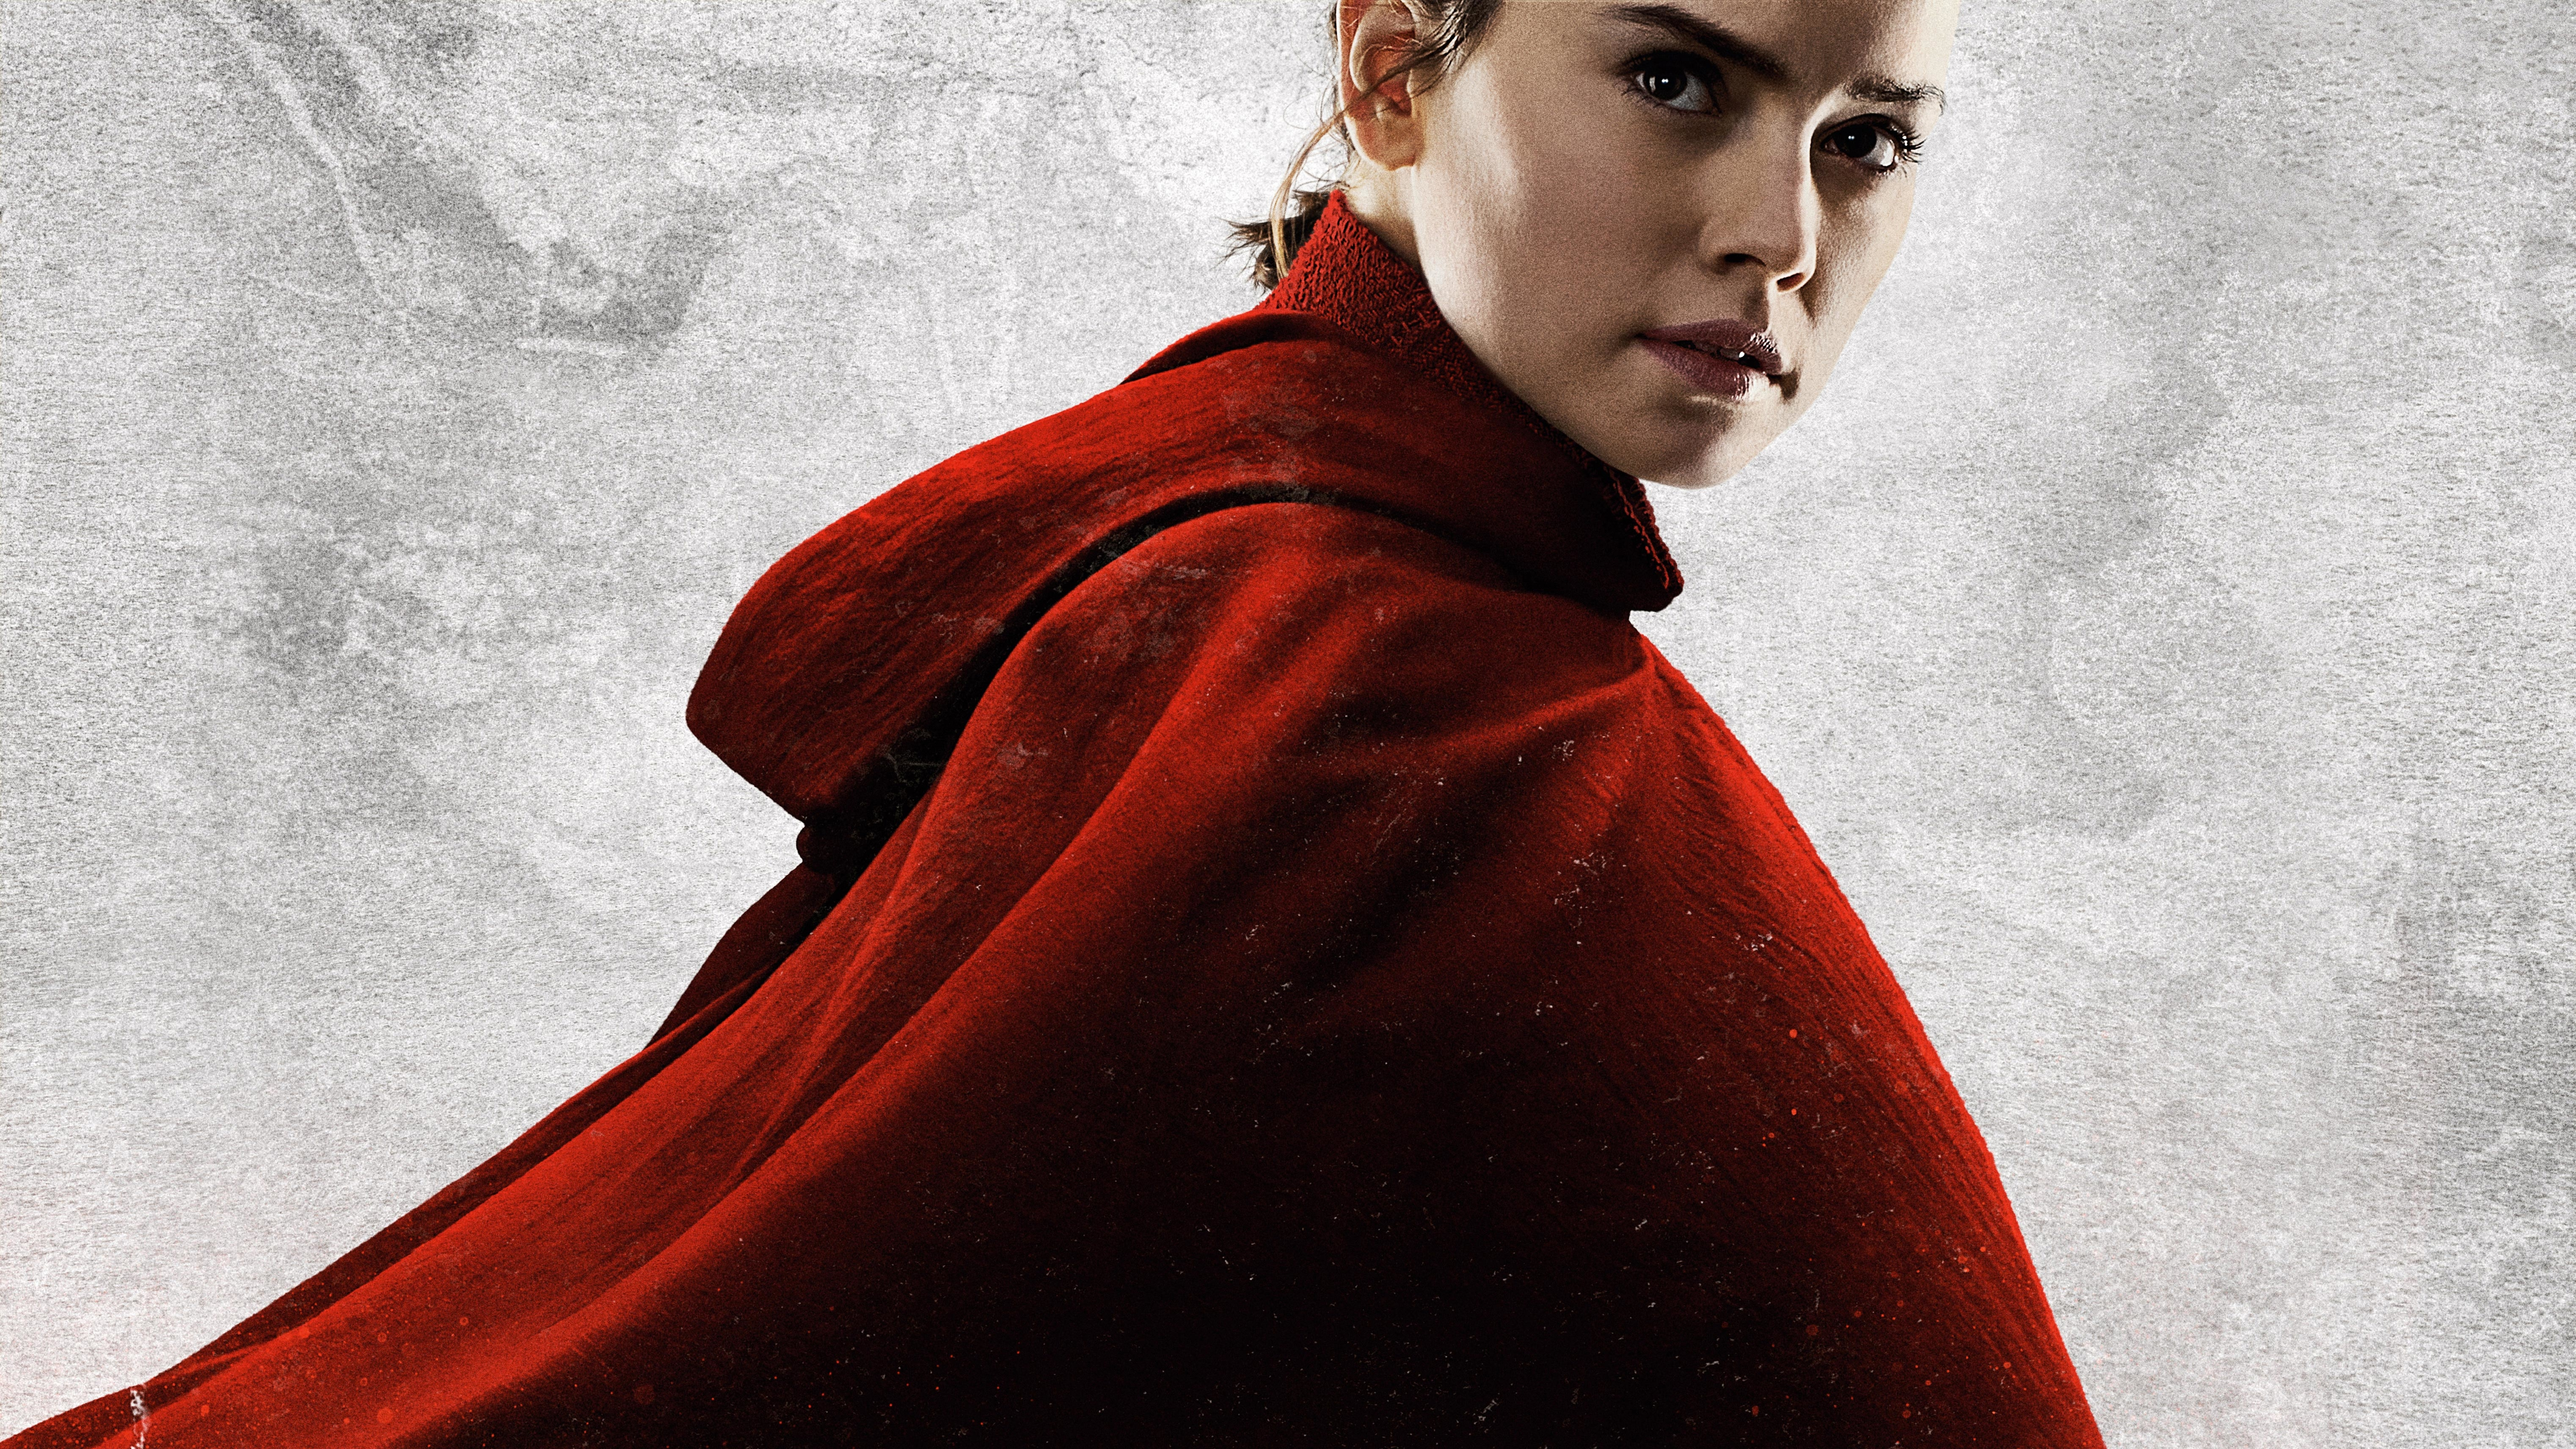 Rey Star Wars The Last Jedi Wallpaper Hd Movies 4k Wallpapers Images Photos And Background